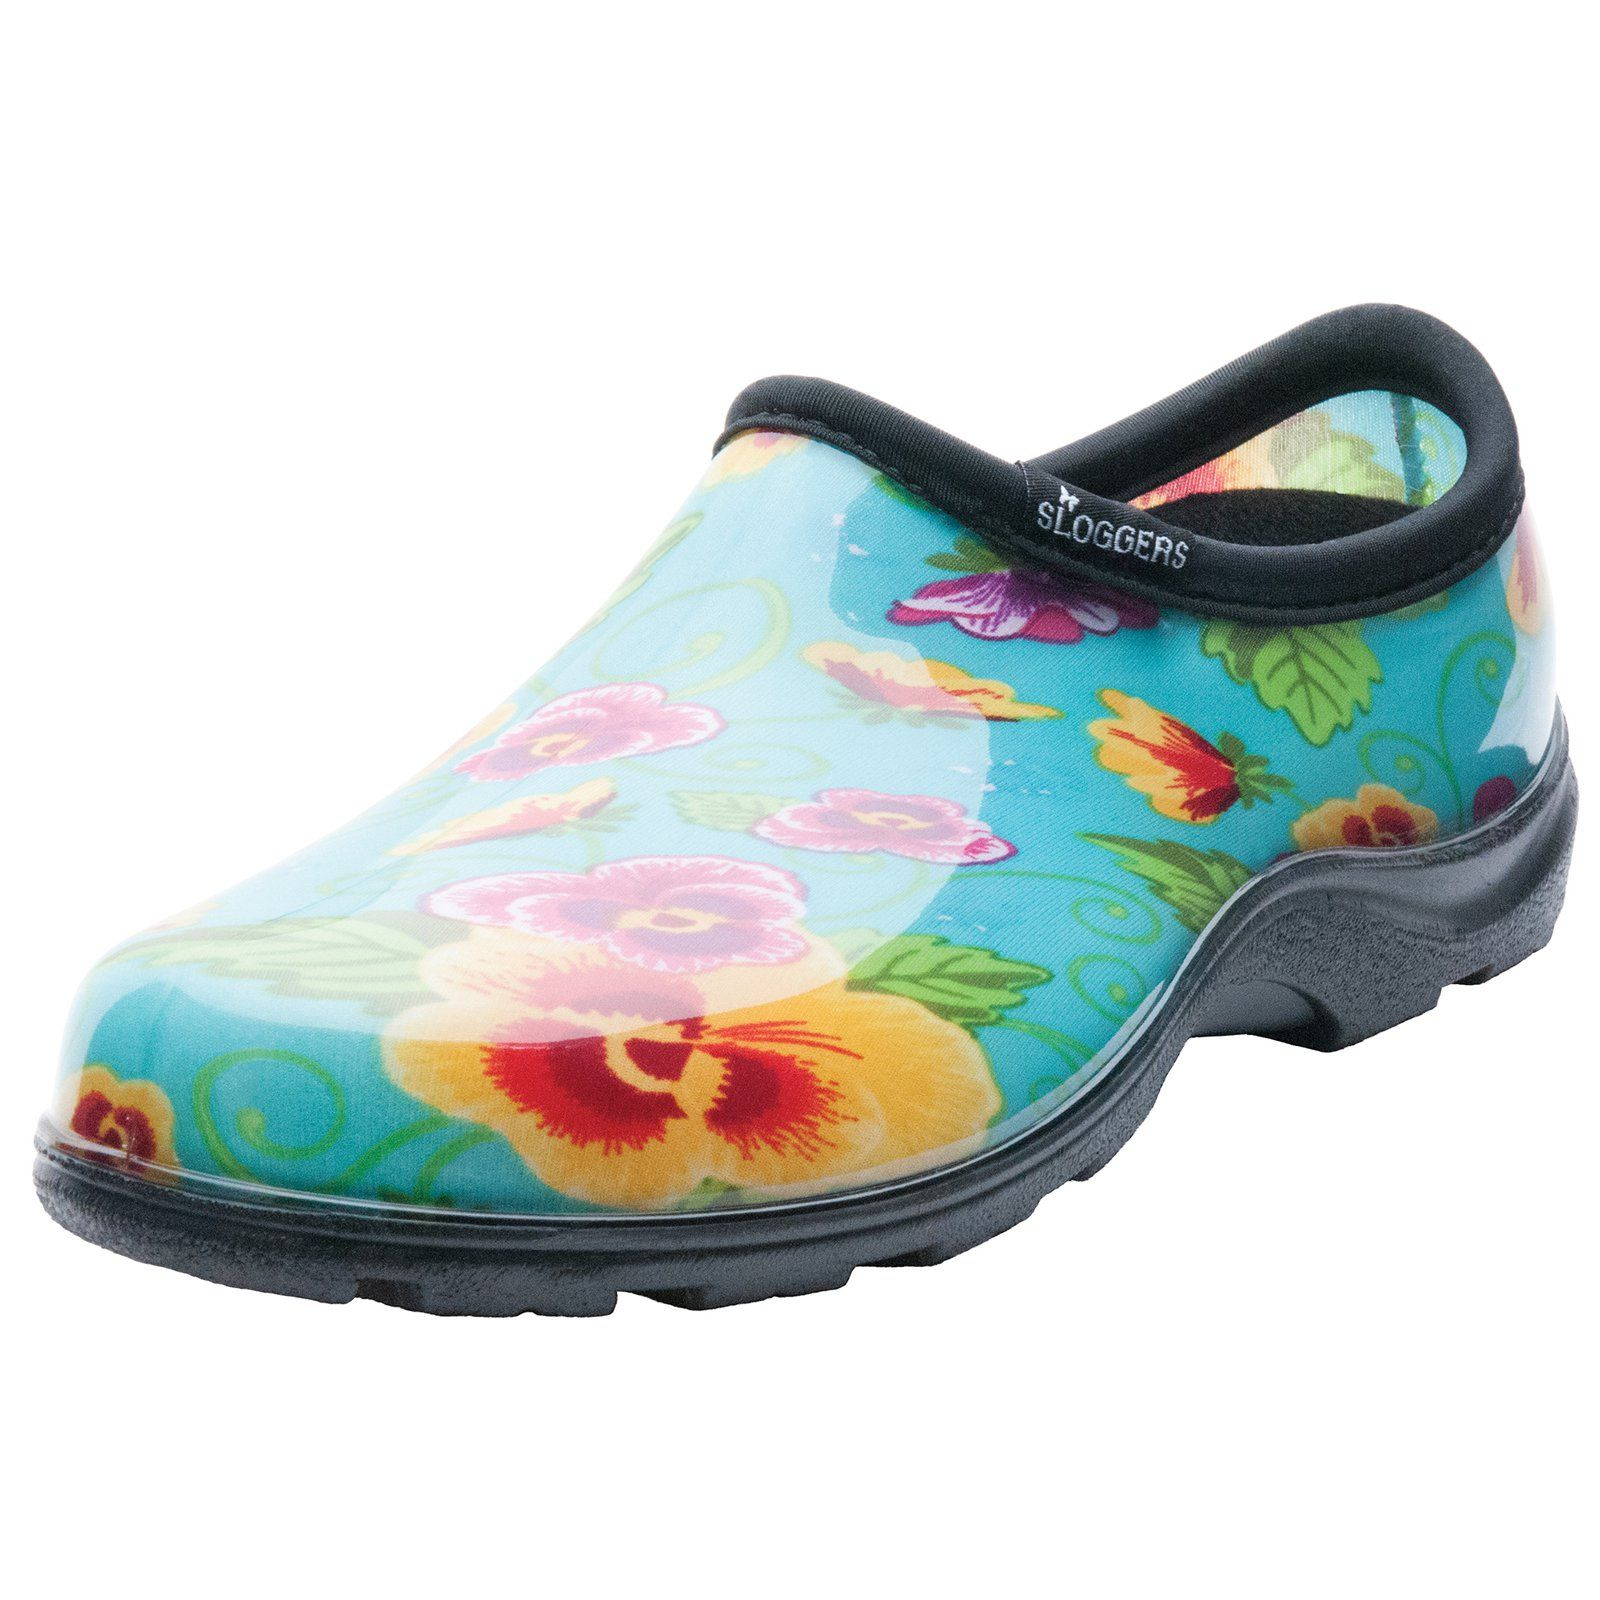 Sloggers 5114TP07 Size 7 Womens Teal Pansy Print Rain and